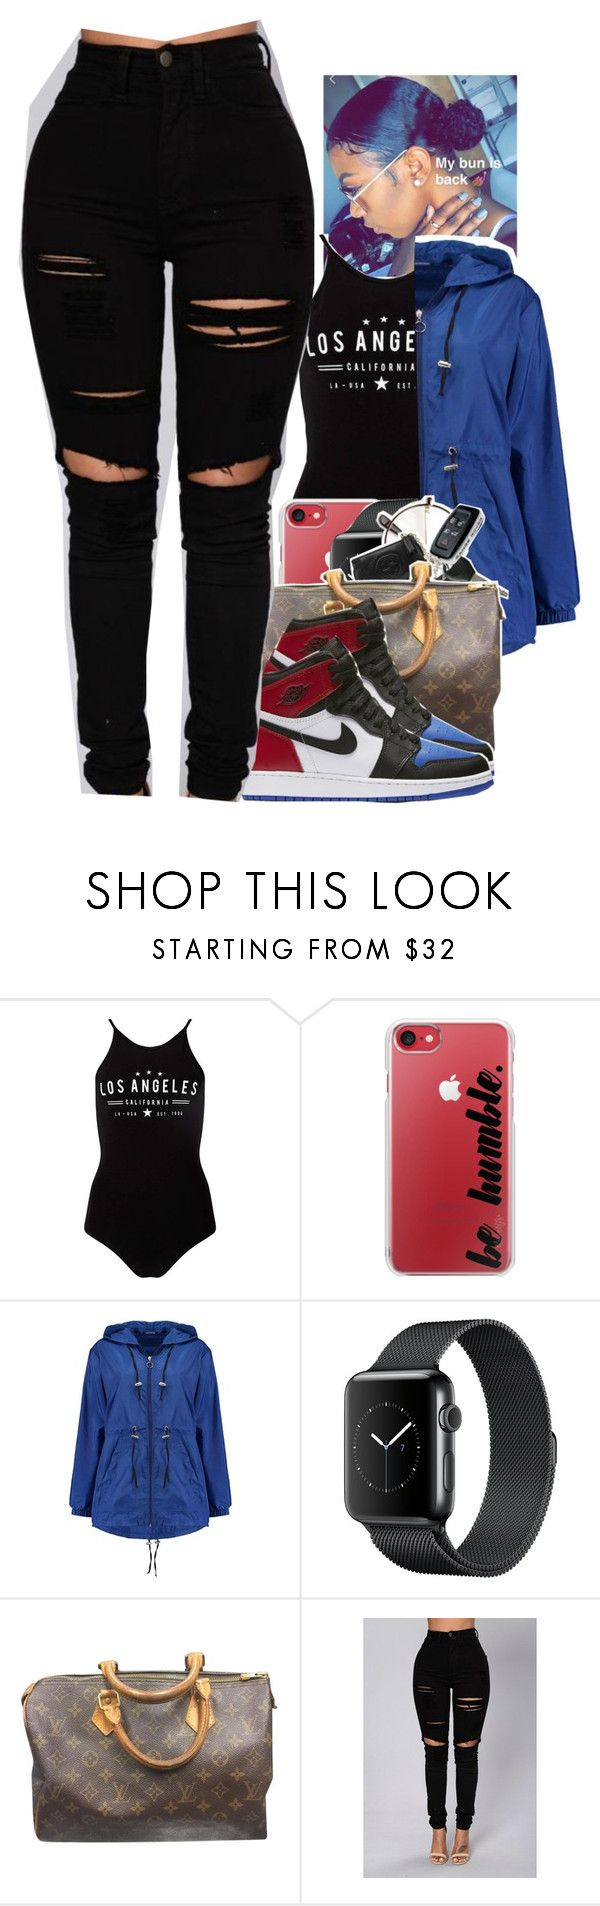 """""""Untitled #2081"""" by txoni ❤ liked on Polyvore featuring Miss Selfridge, Casetify, Boohoo, Louis Vuitton and NIKE"""